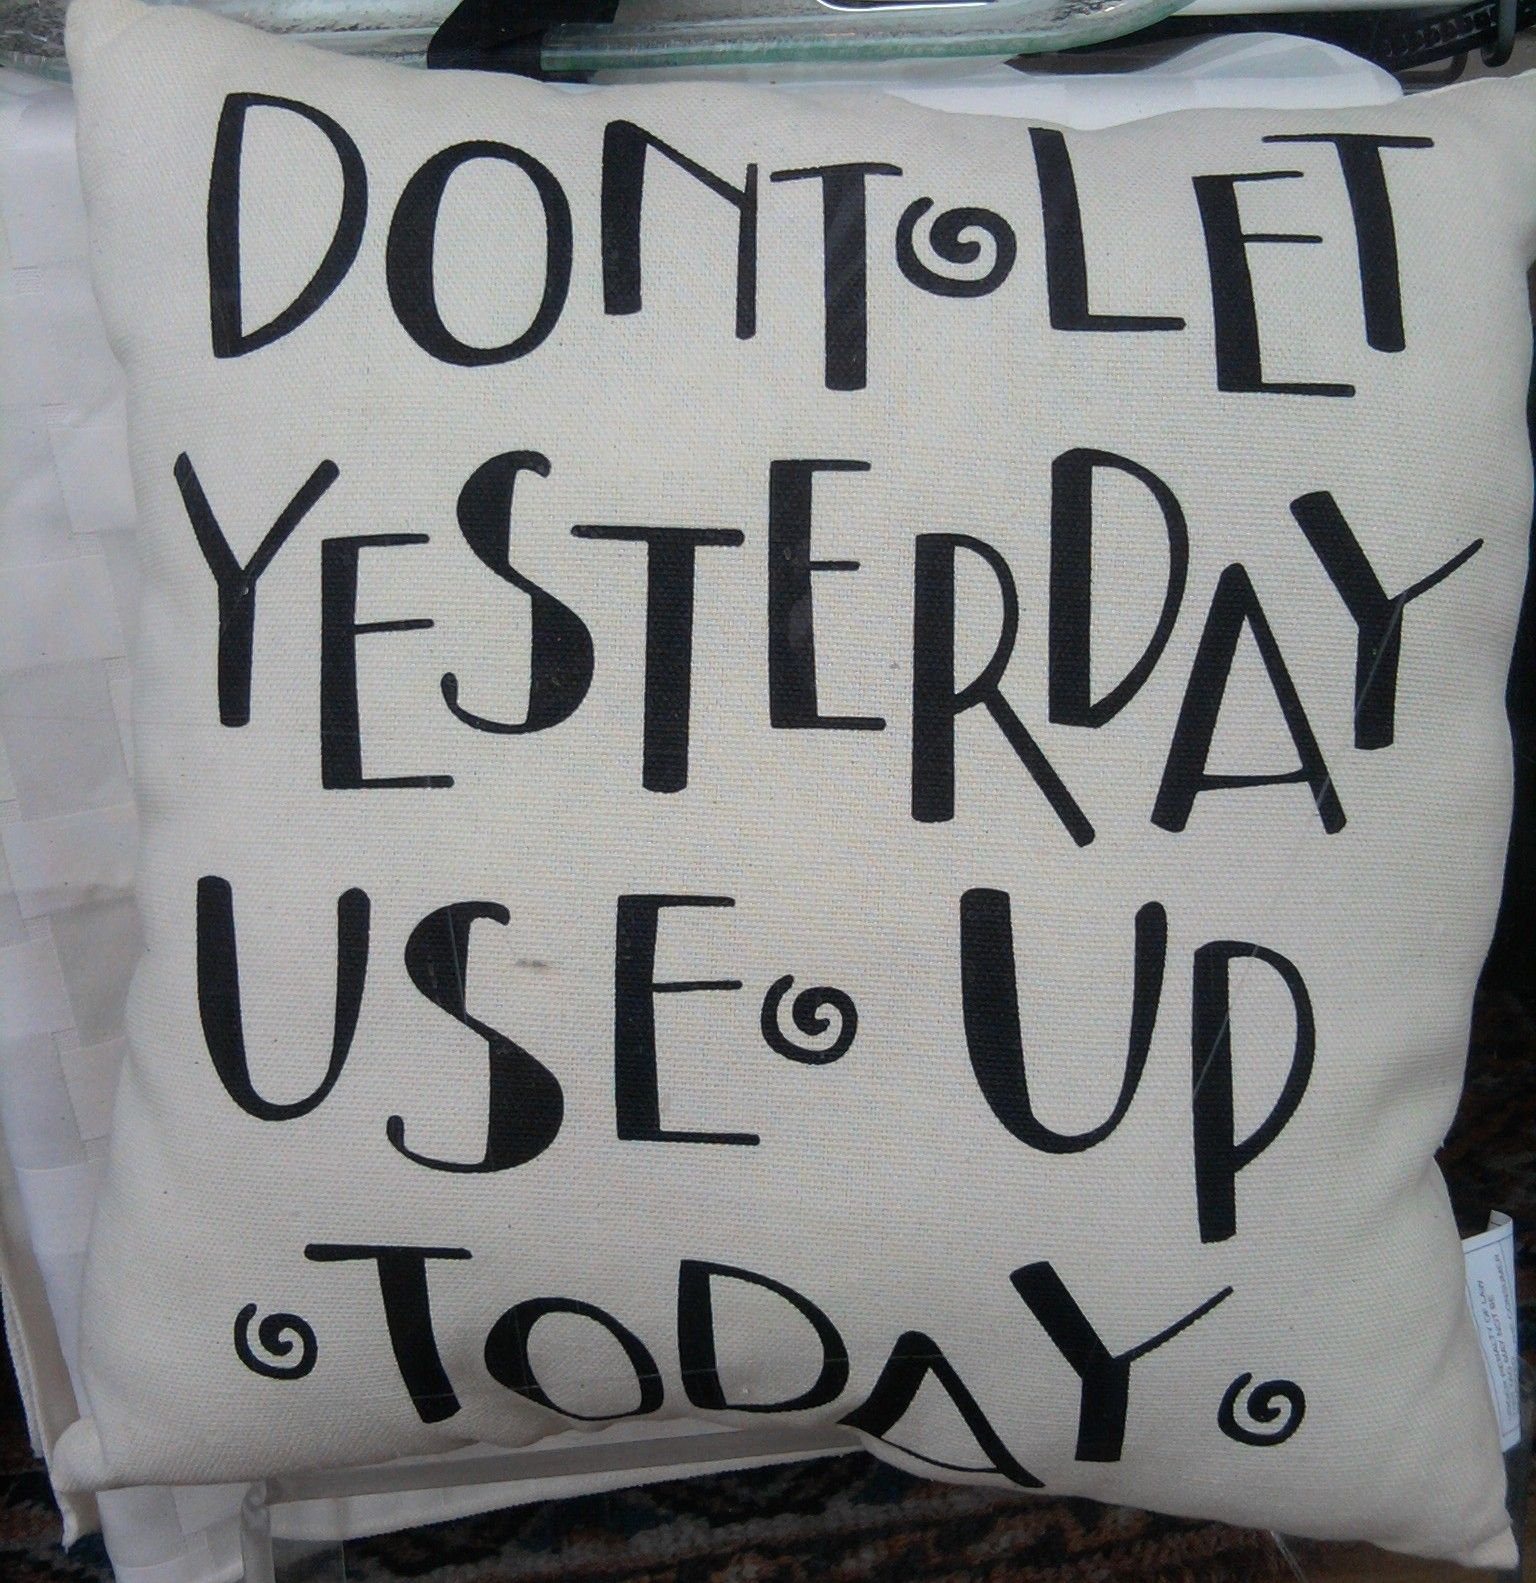 Yesterday vs. Today  Yesterday quotes, Sign quotes, Quotes